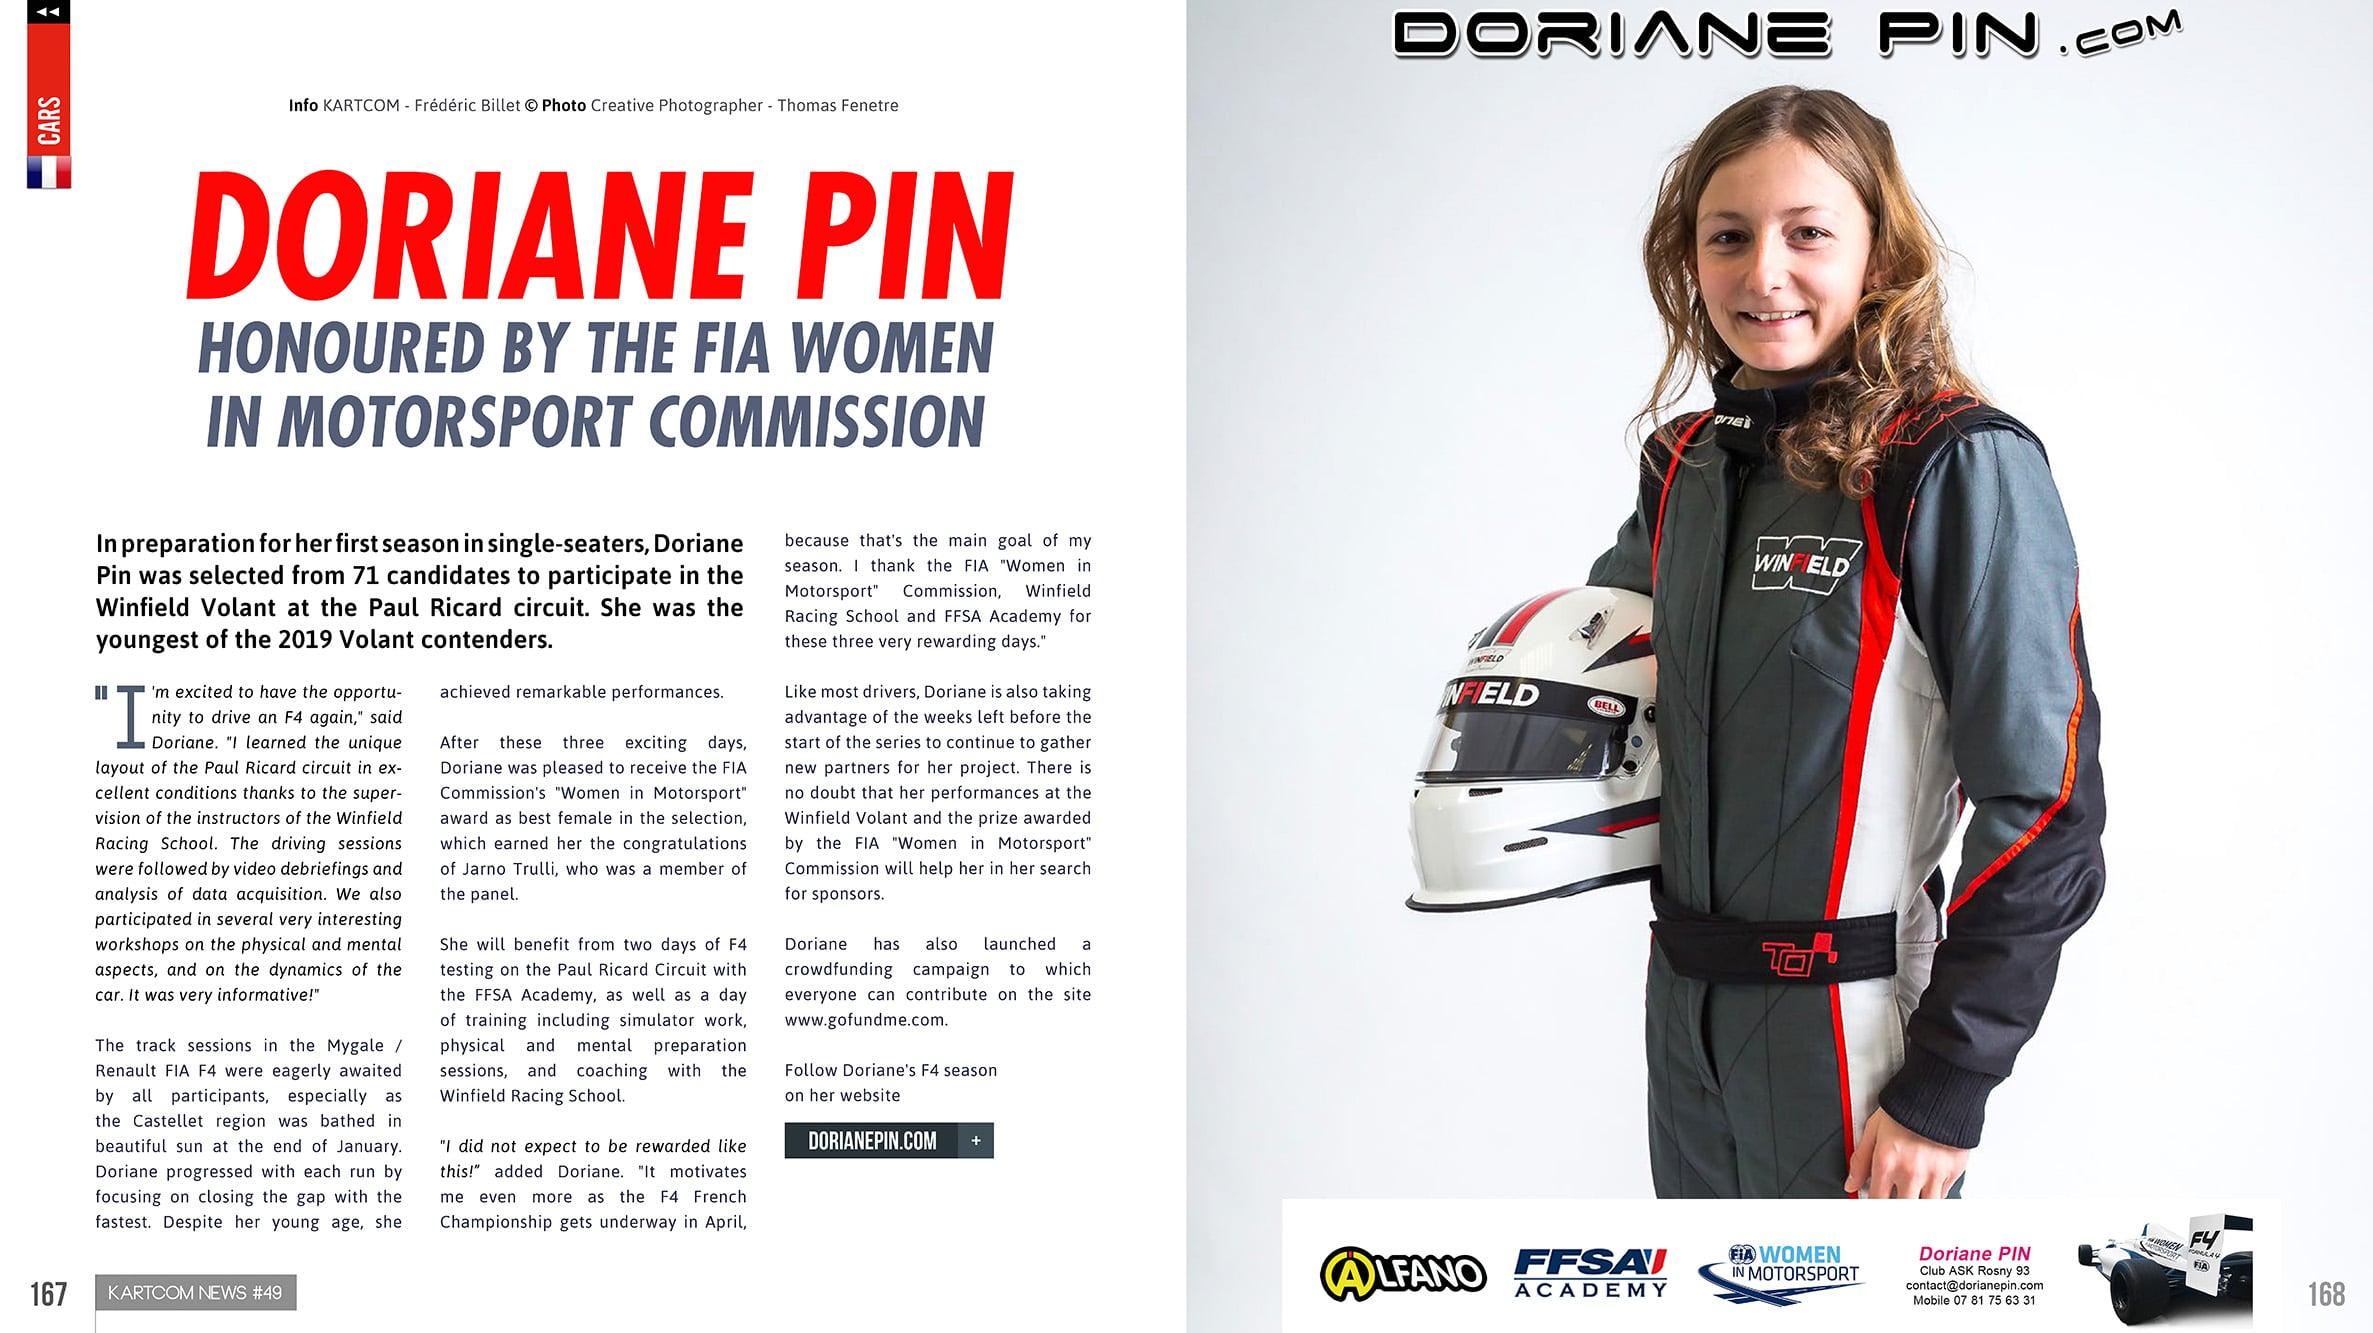 Doriane Pin honoured by the FIA Women in Motorsport Commission during Winfield Challenge at Le Castellet , post feb 2019